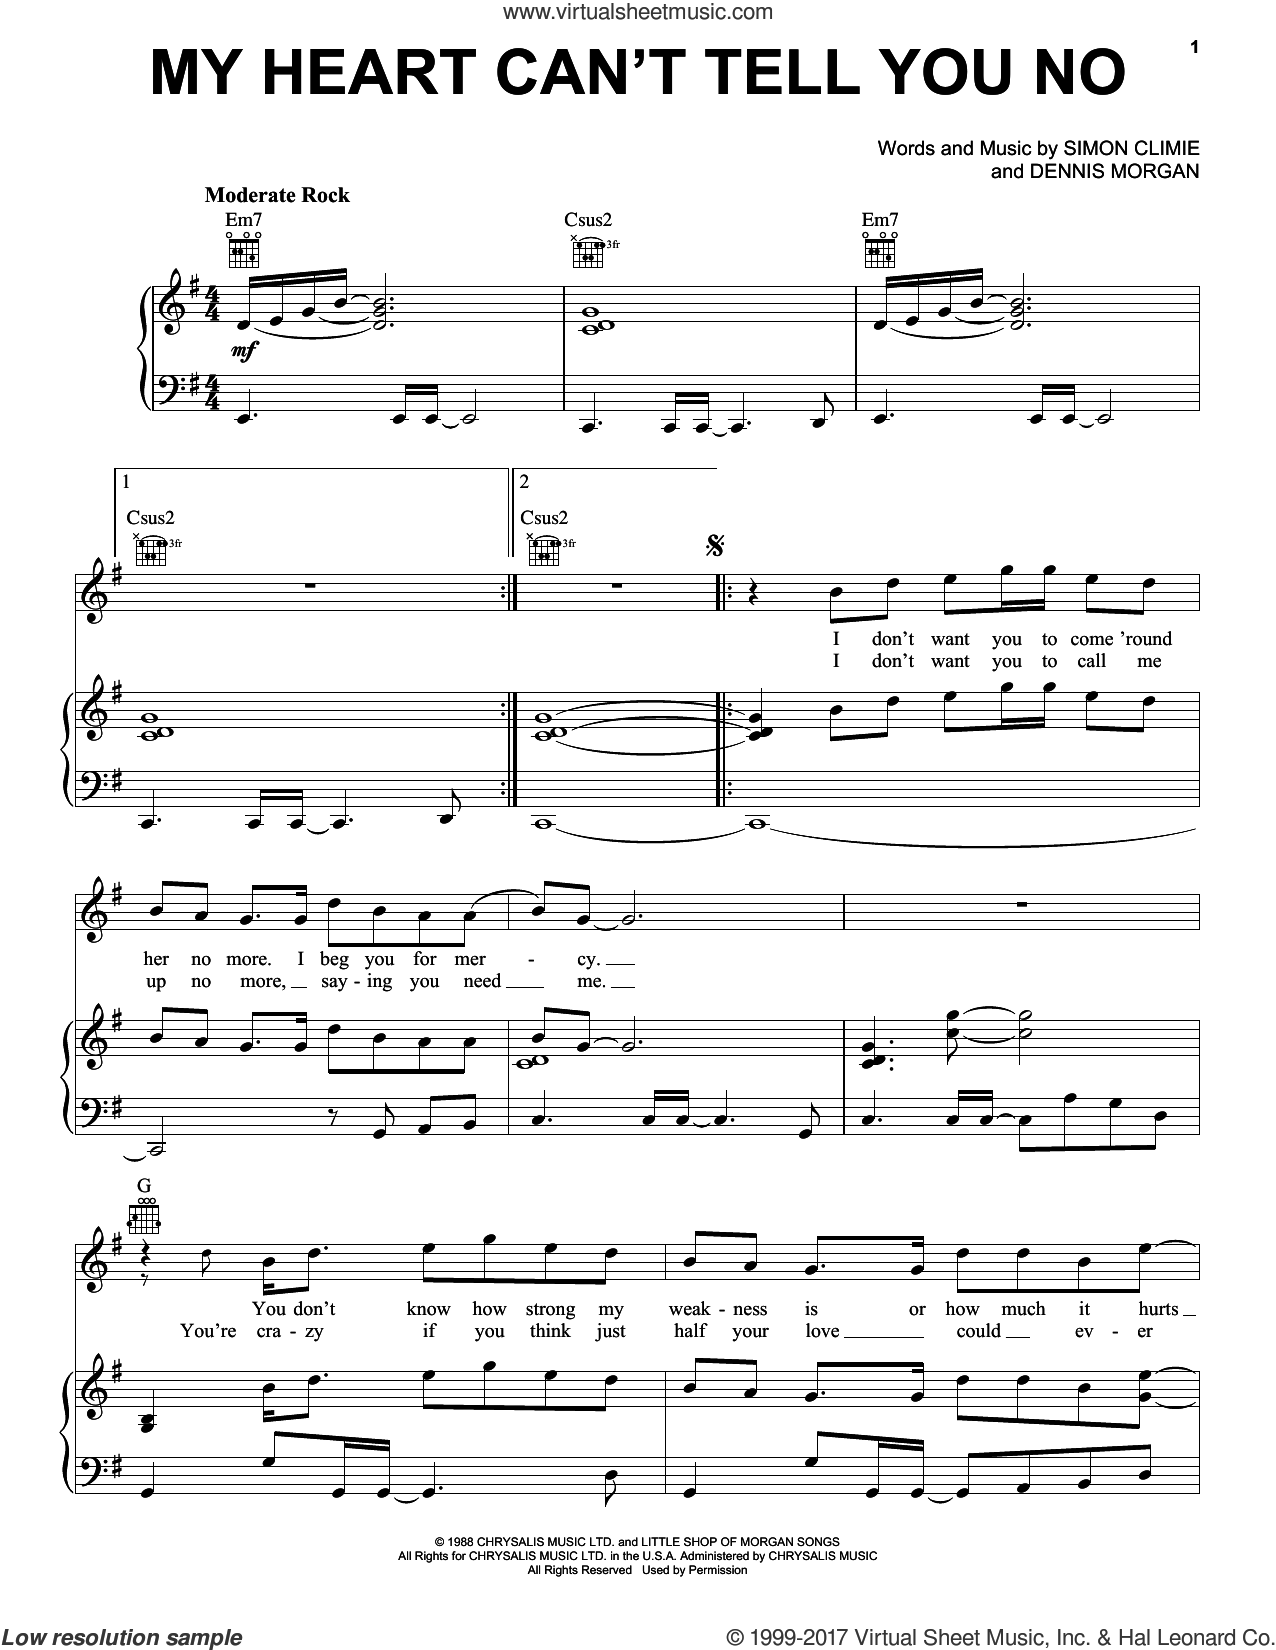 My Heart Can't Tell You No sheet music for voice, piano or guitar by Rod Stewart, Dennis Morgan, Sara Evans and Simon Climie, intermediate skill level